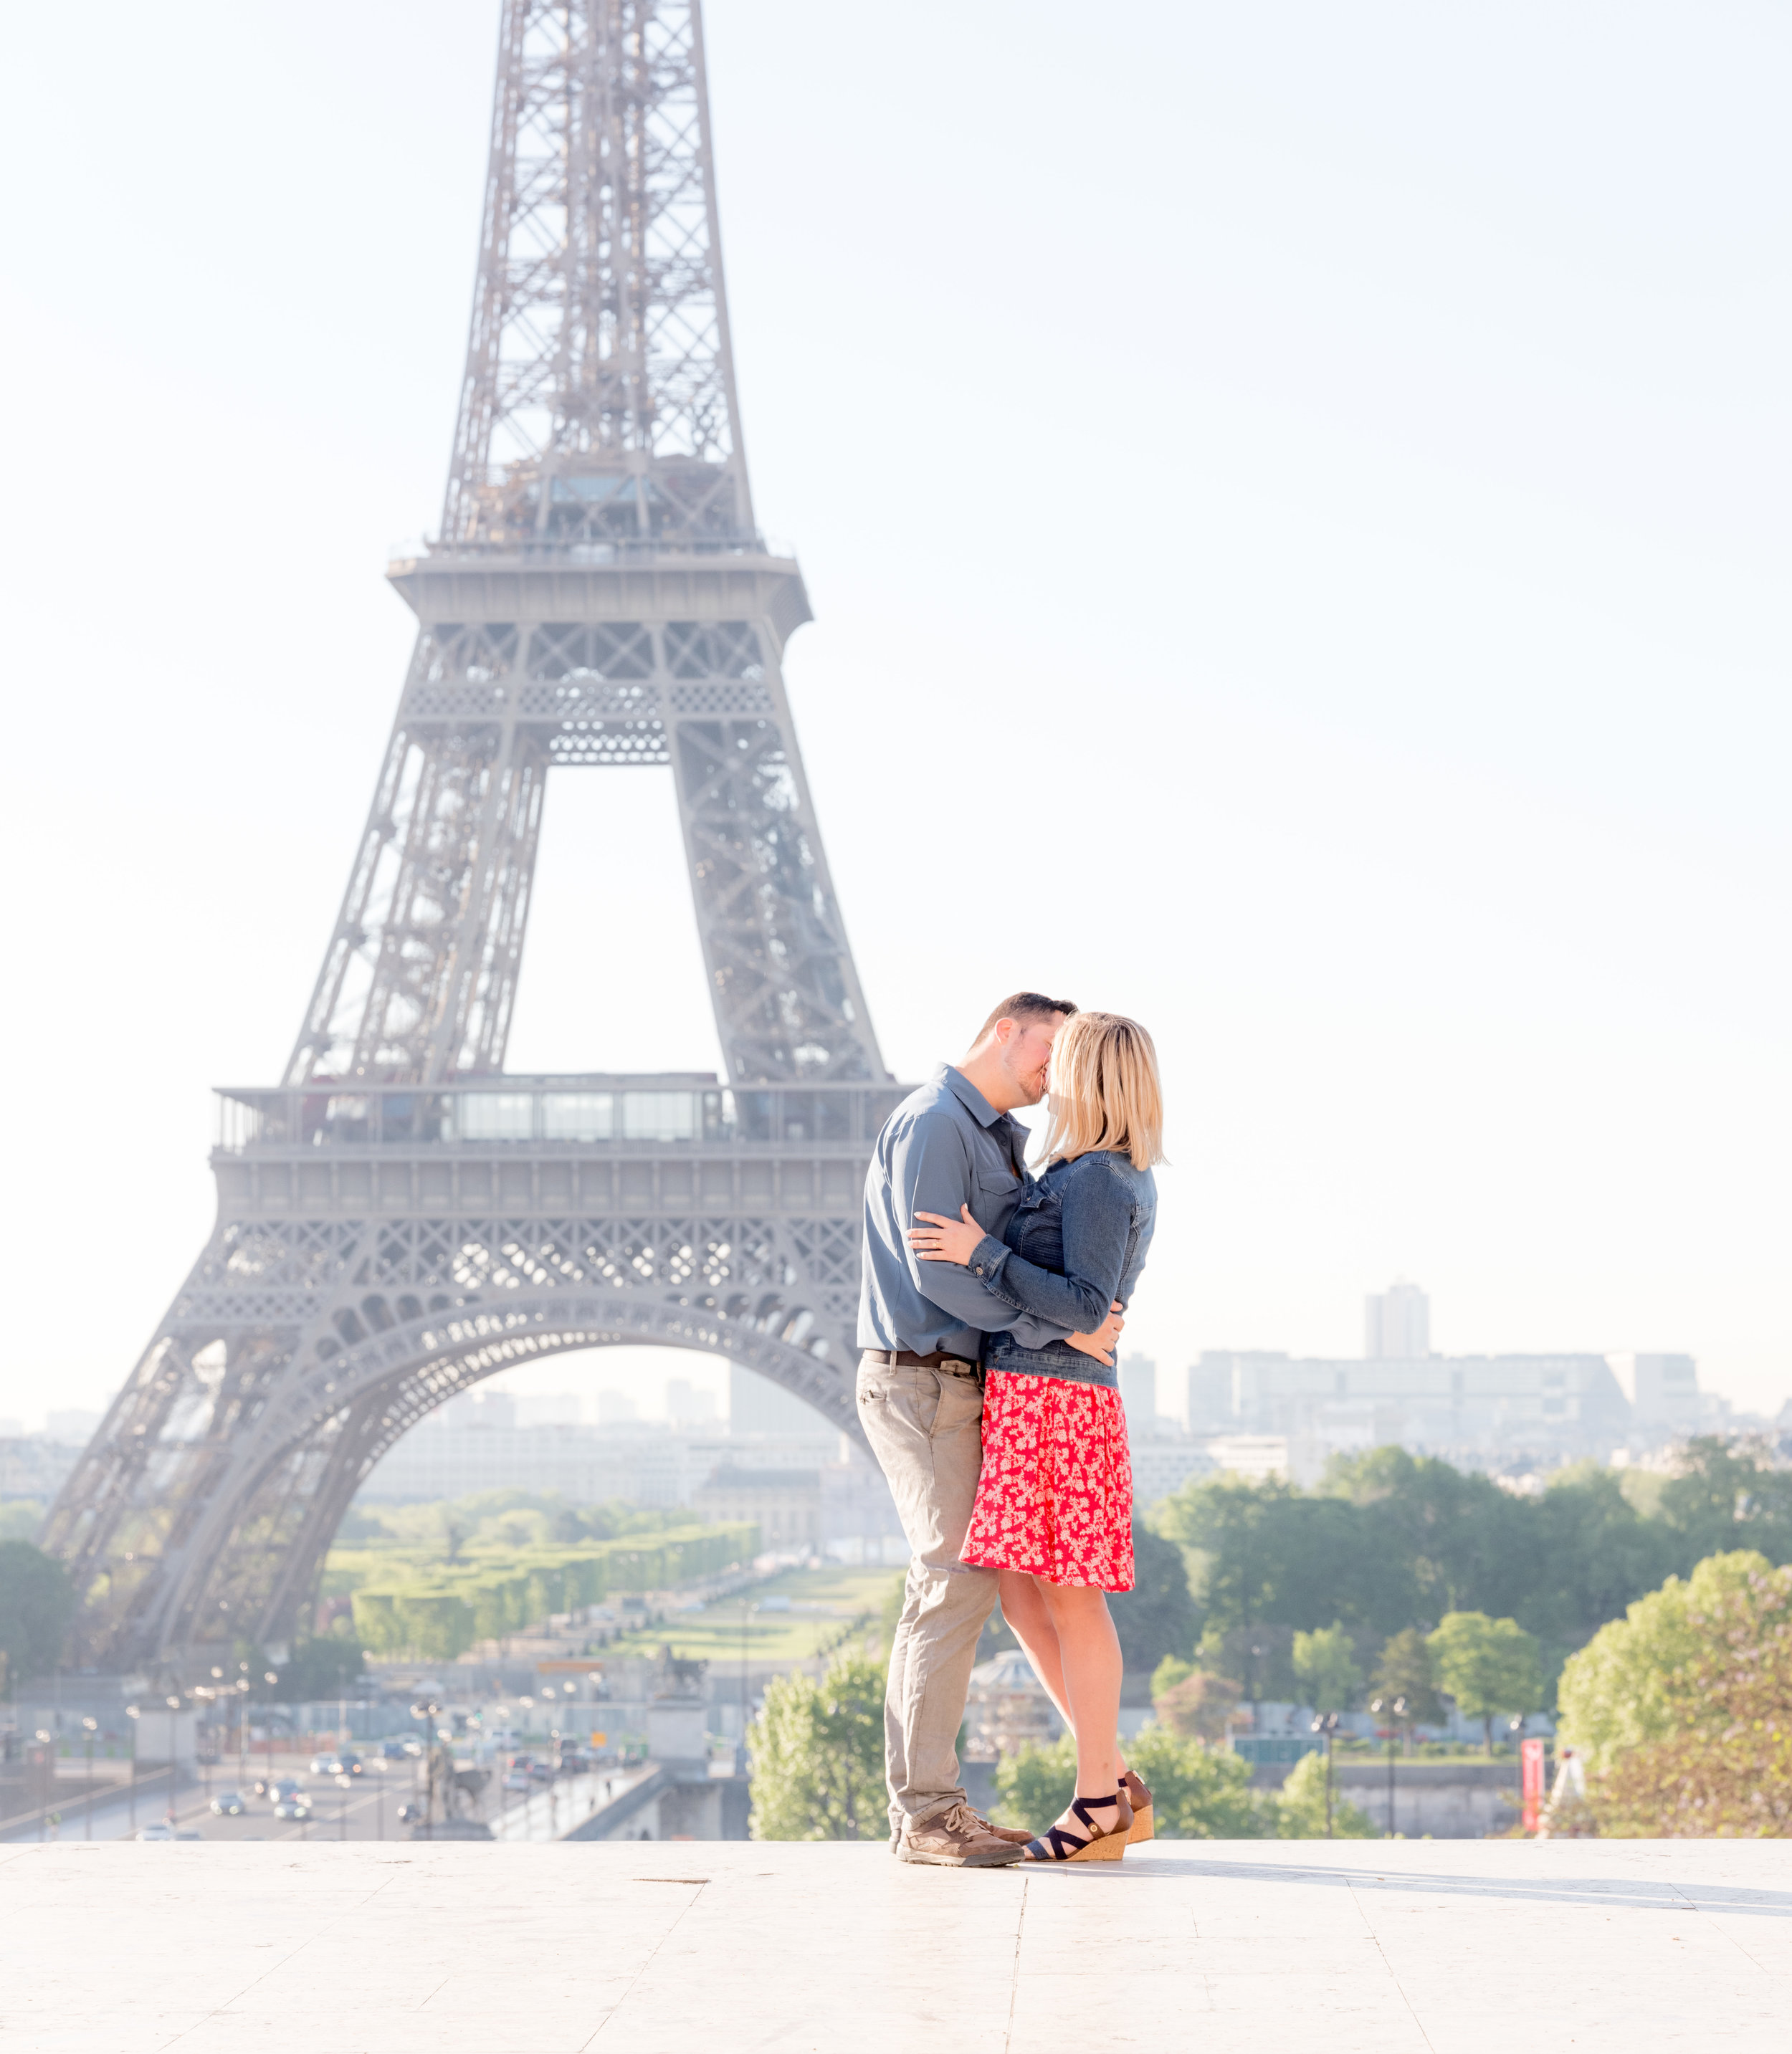 An anniversary celebration photo shoot in Paris at the Eiffel Tower